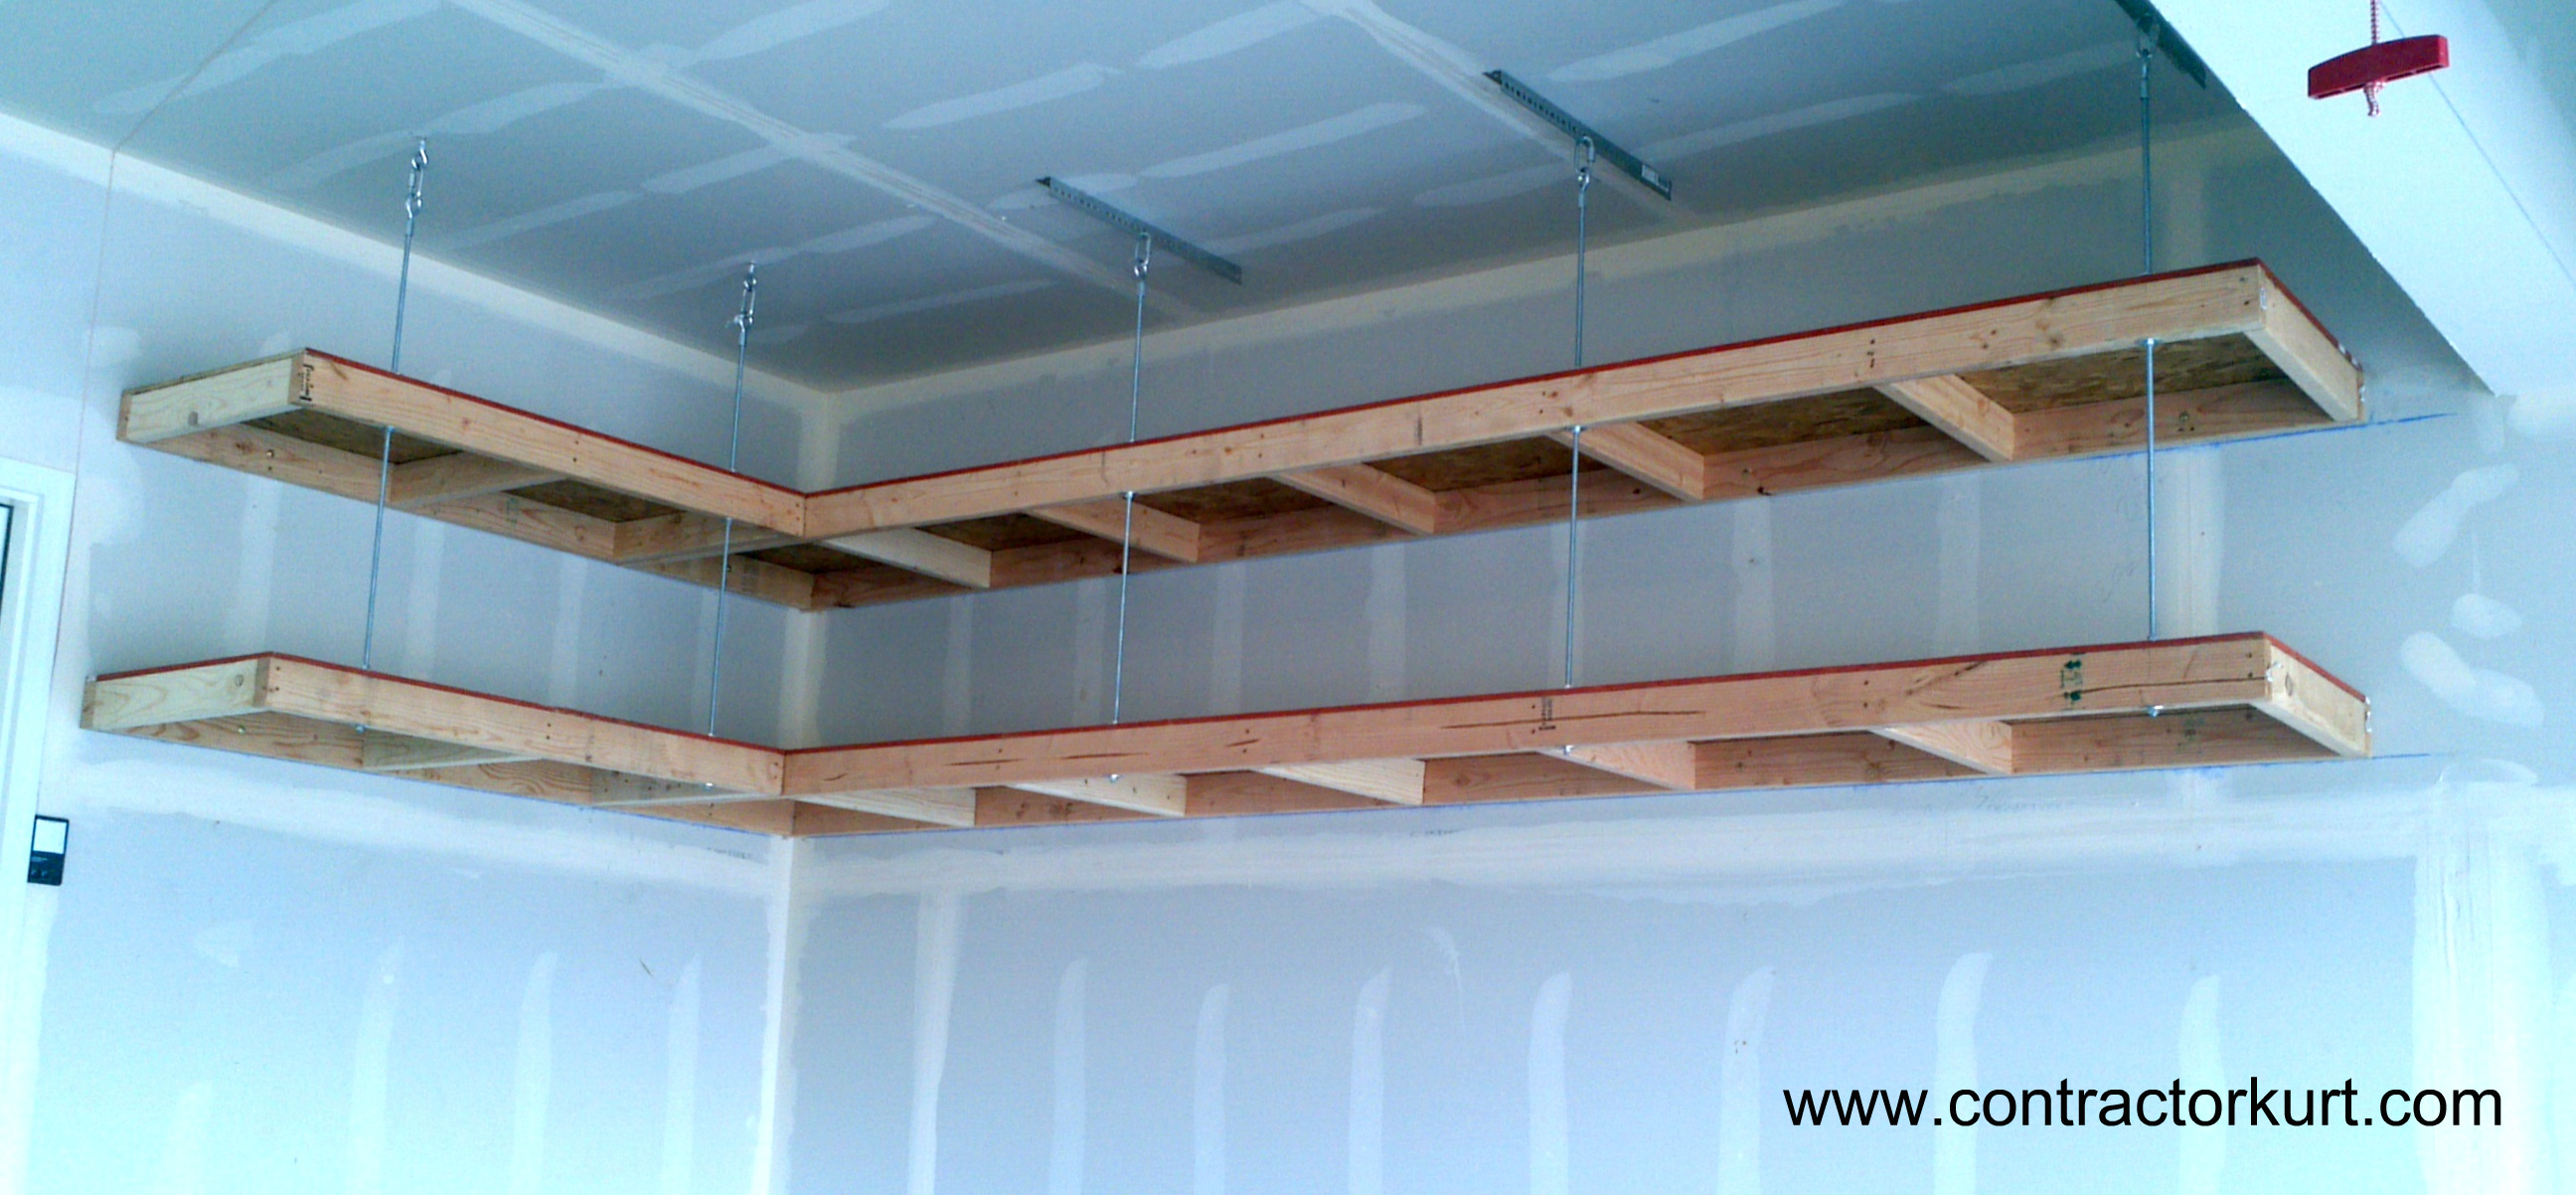 Overhead garage storage the perfect storage solution overhead garage storage overhead garage shelves nquaoem solutioingenieria Images